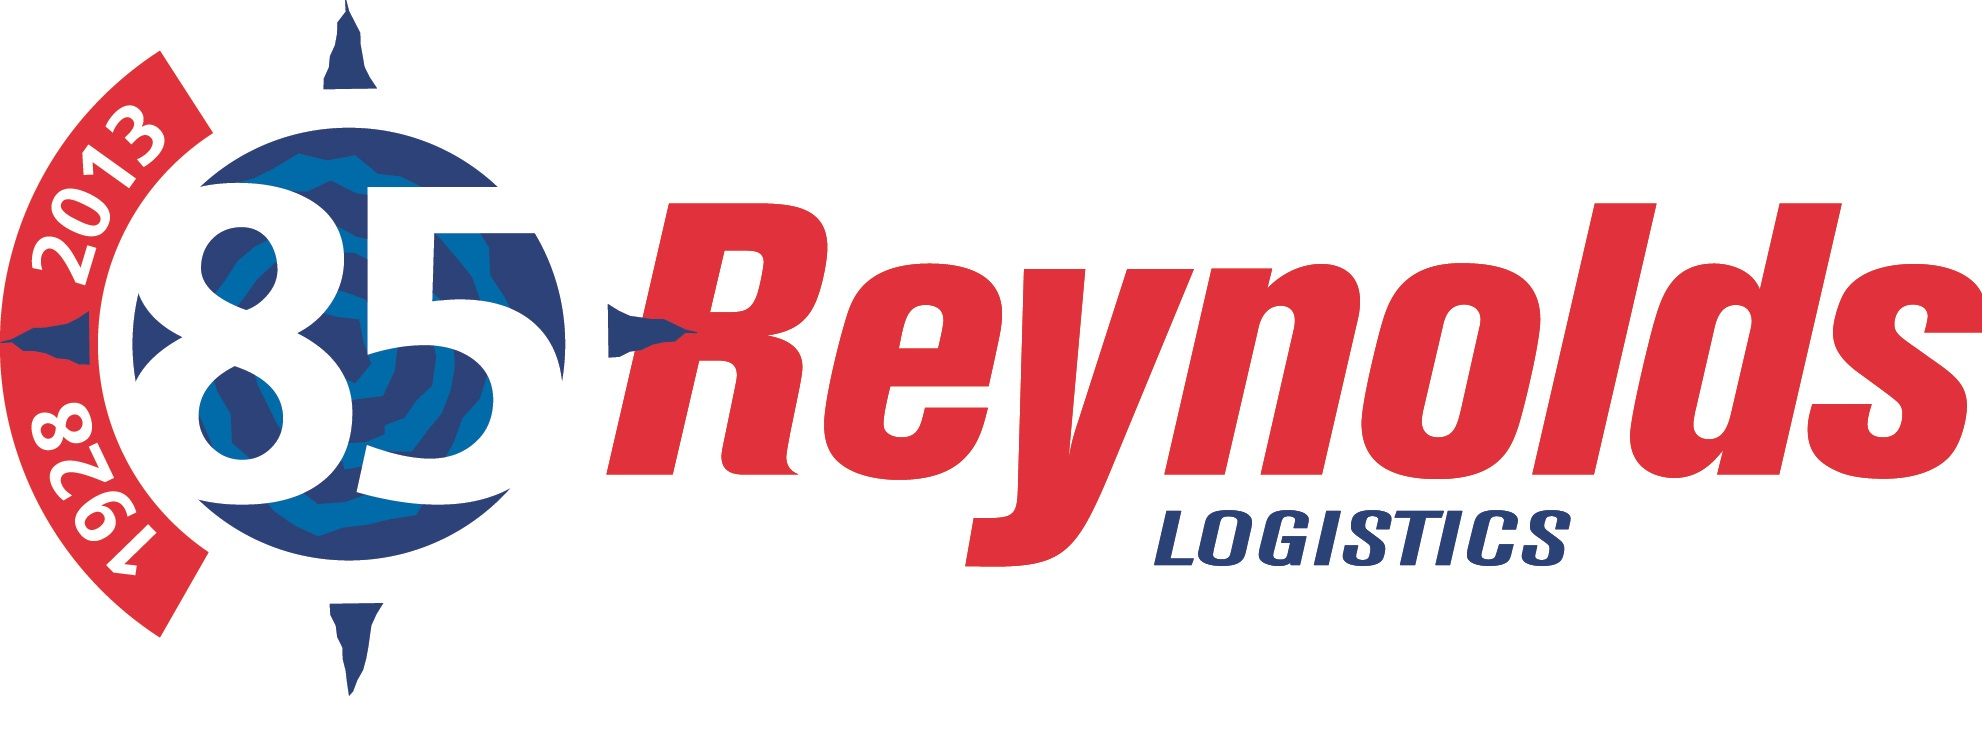 reynold company The reynolds company is a custom compounder of water based, hot melt and dry blend adhesives and coatings serving a variety of markets domestically as well as internationally.